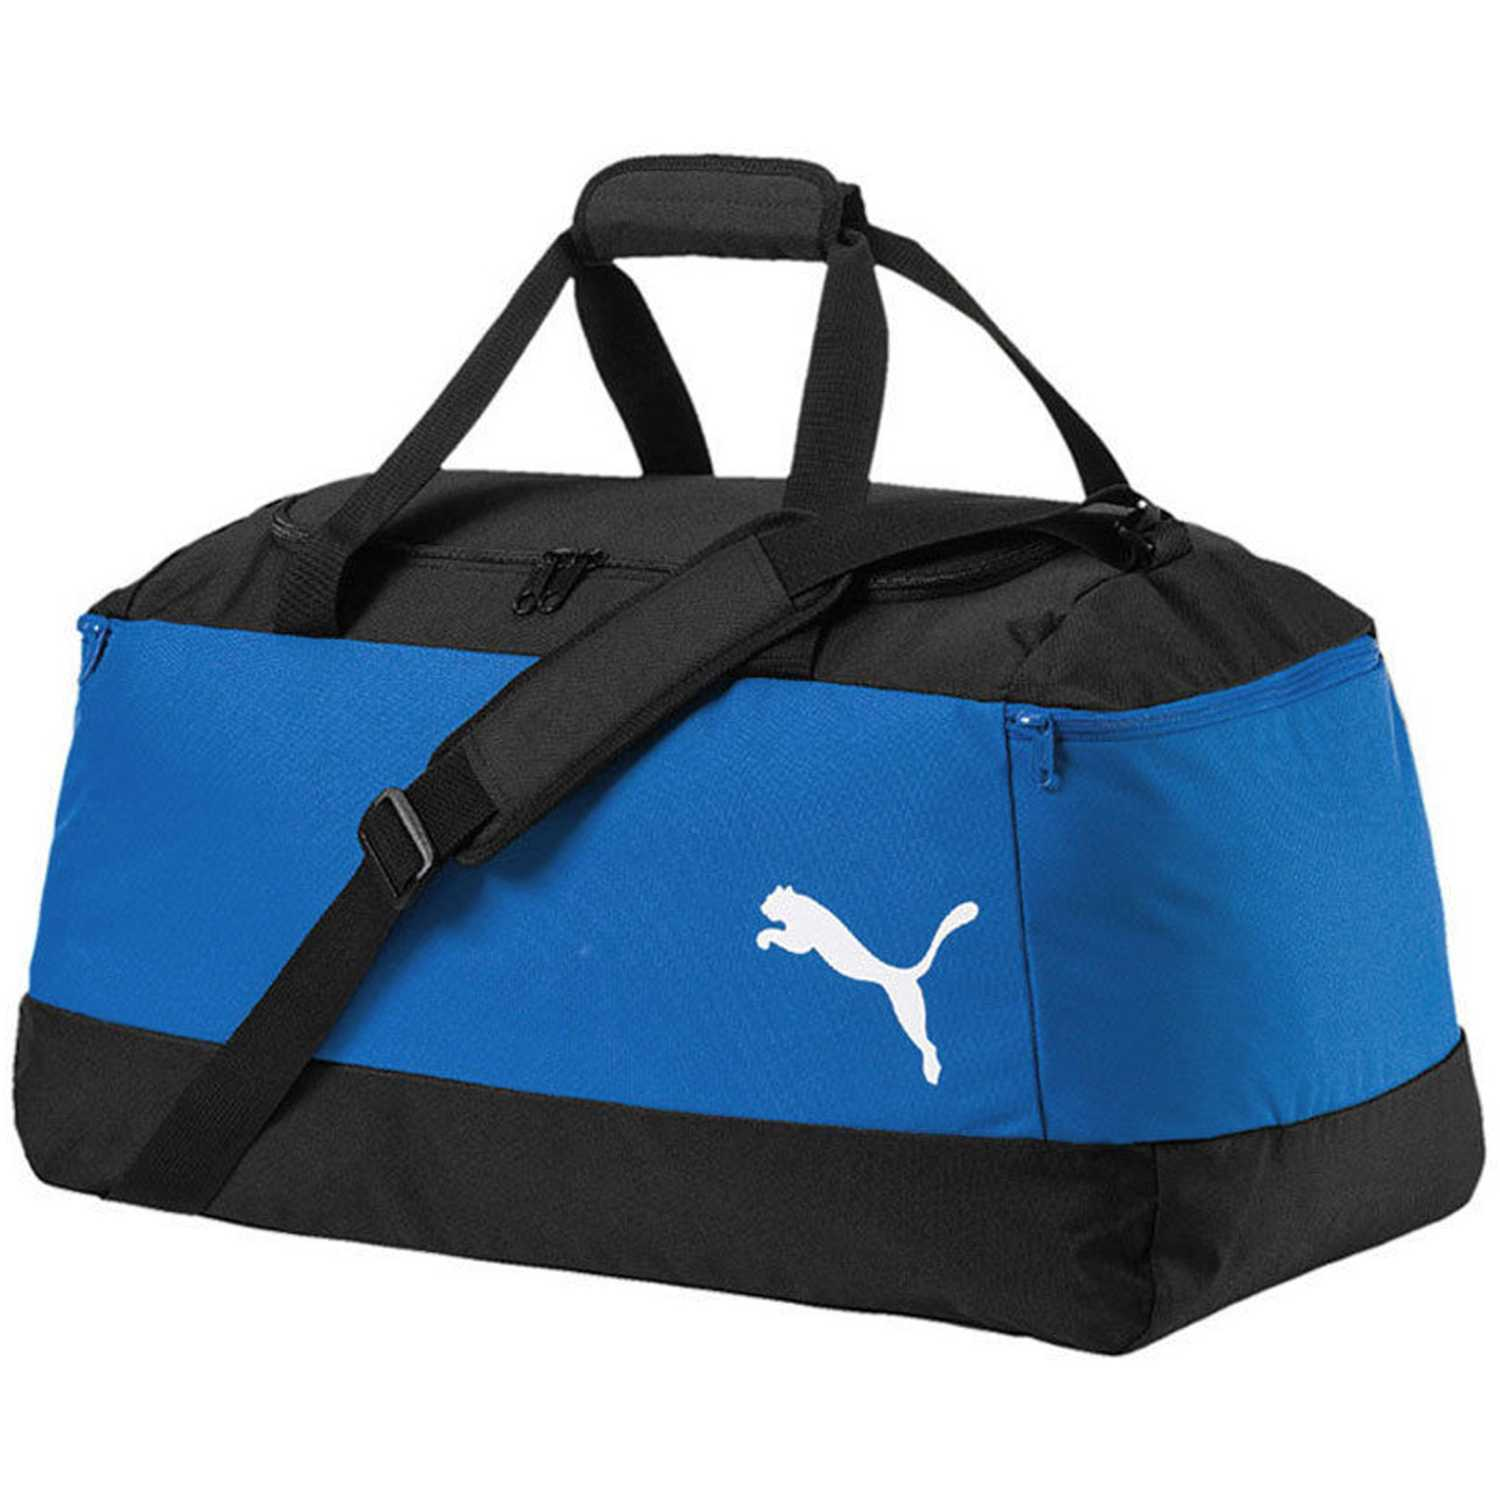 Puma pro training ii medium bag Azul / negro Bolsos de gimnasio